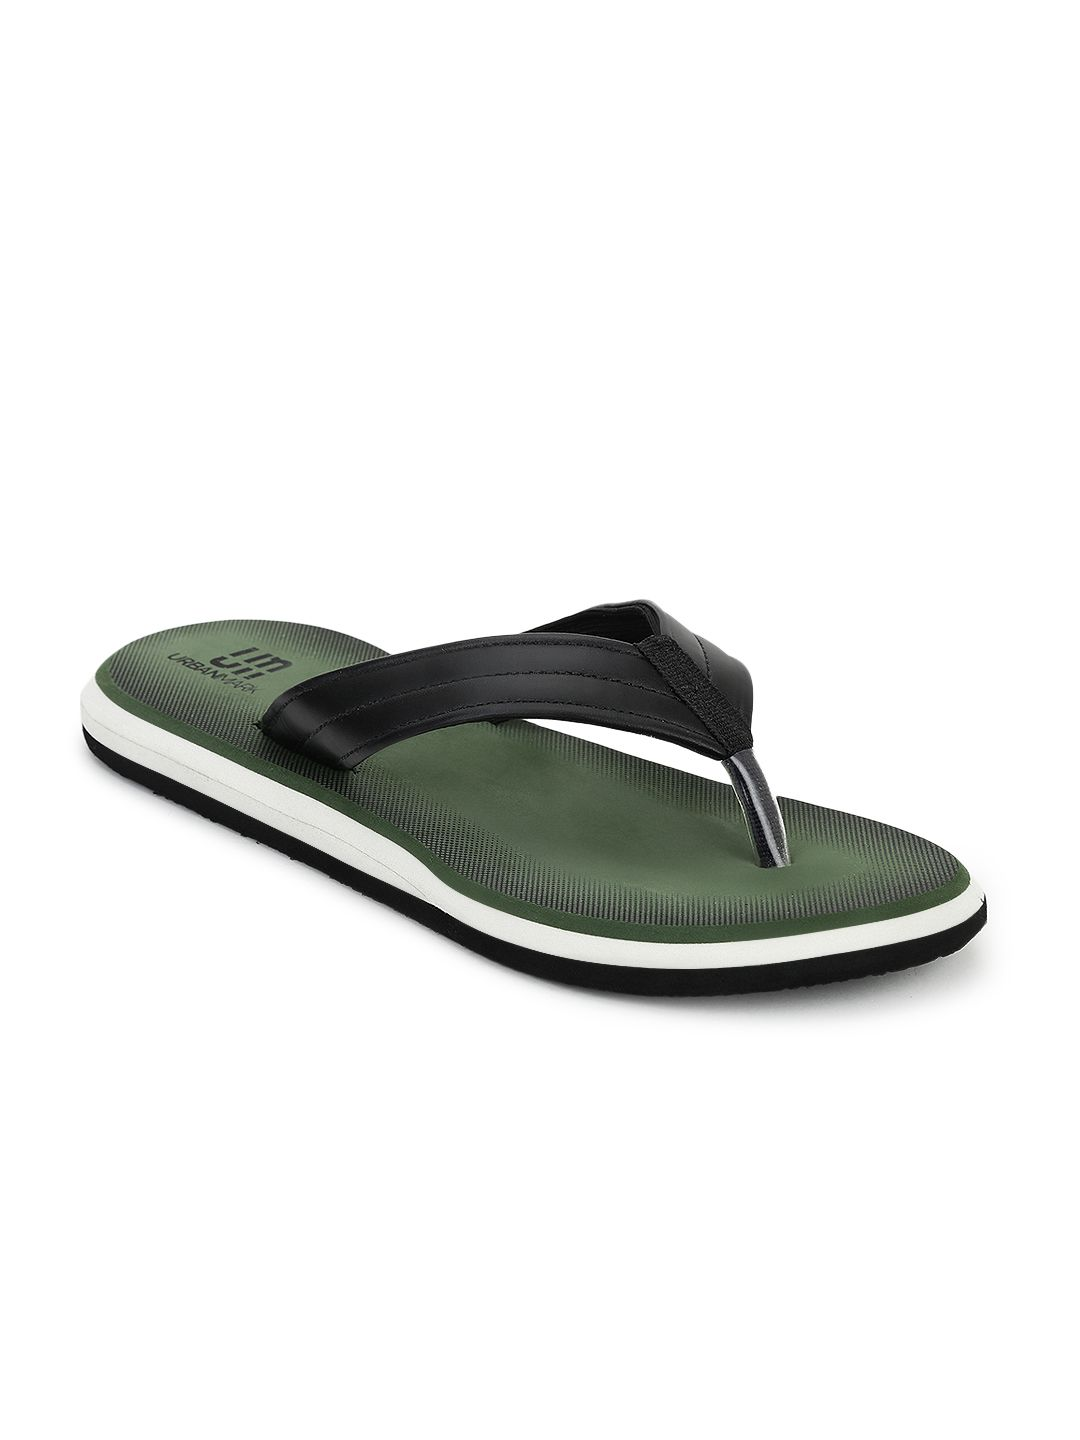 UrbanMark Green Daily Slippers